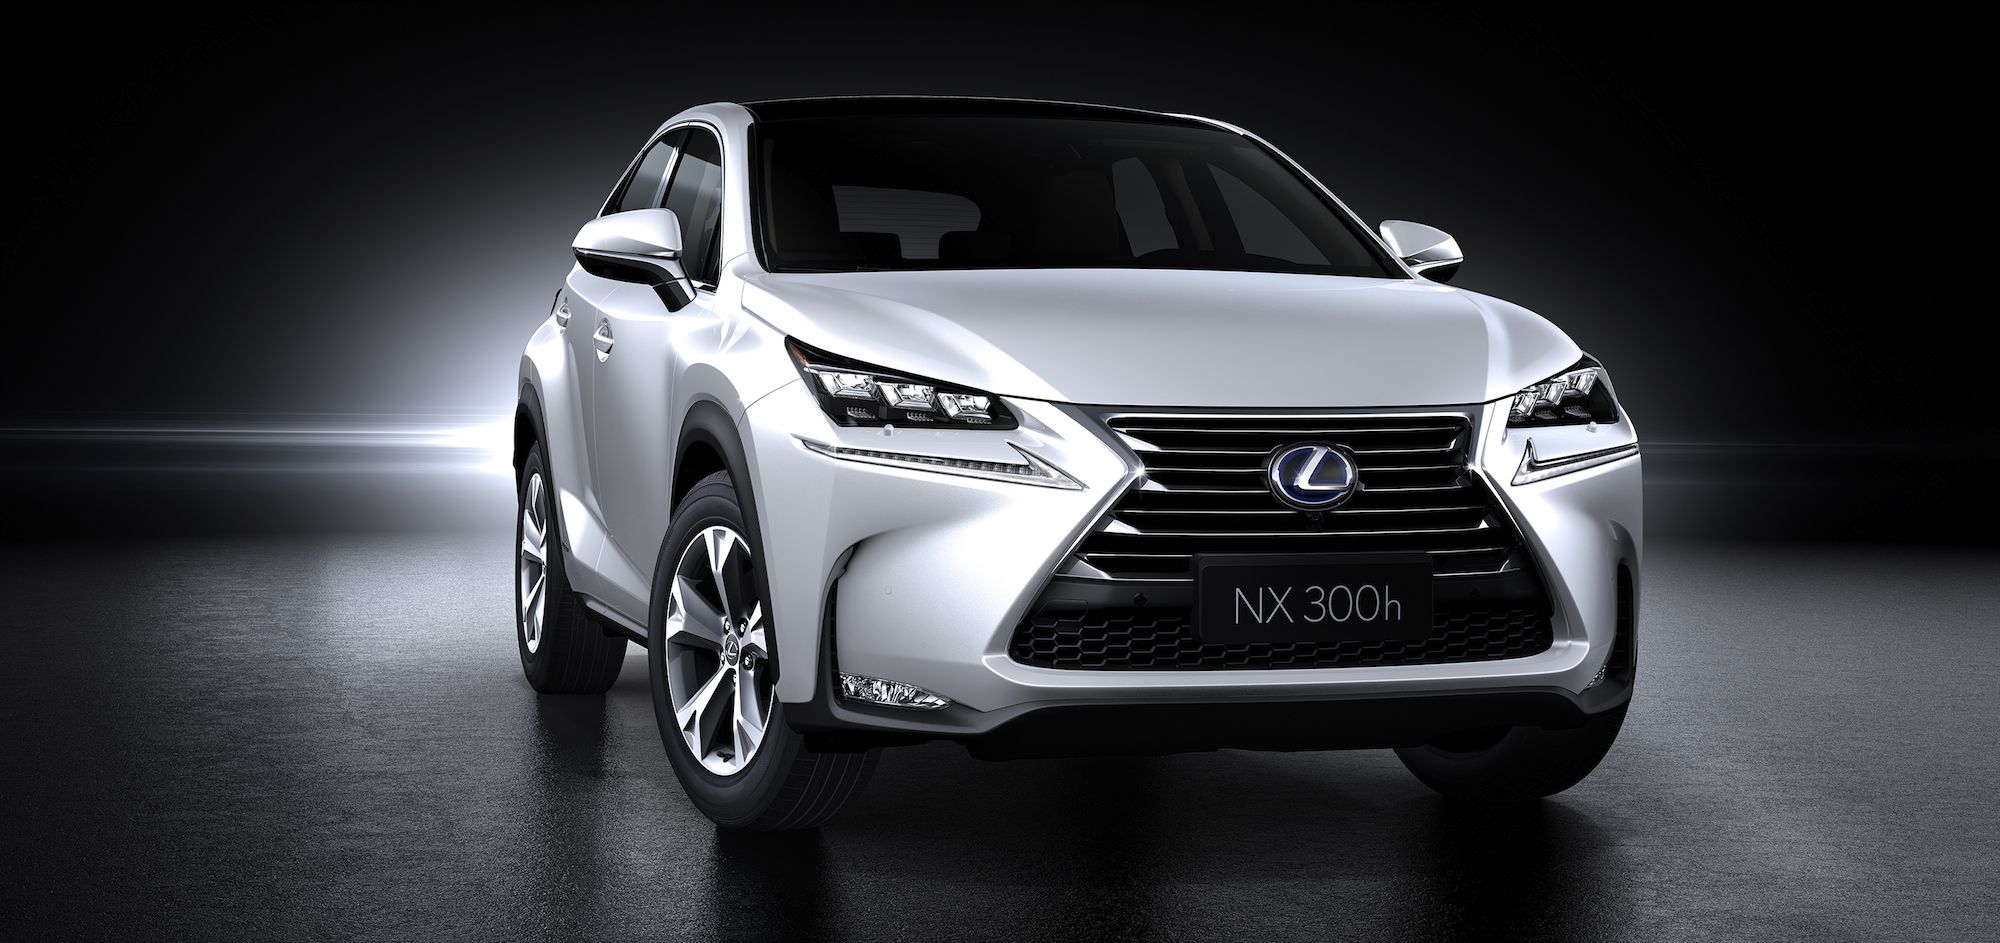 Lexus will be revealing their 2015 nx at the beijing motor show launch on of april the nx from lexus is their first luxury compact crossover lexus w